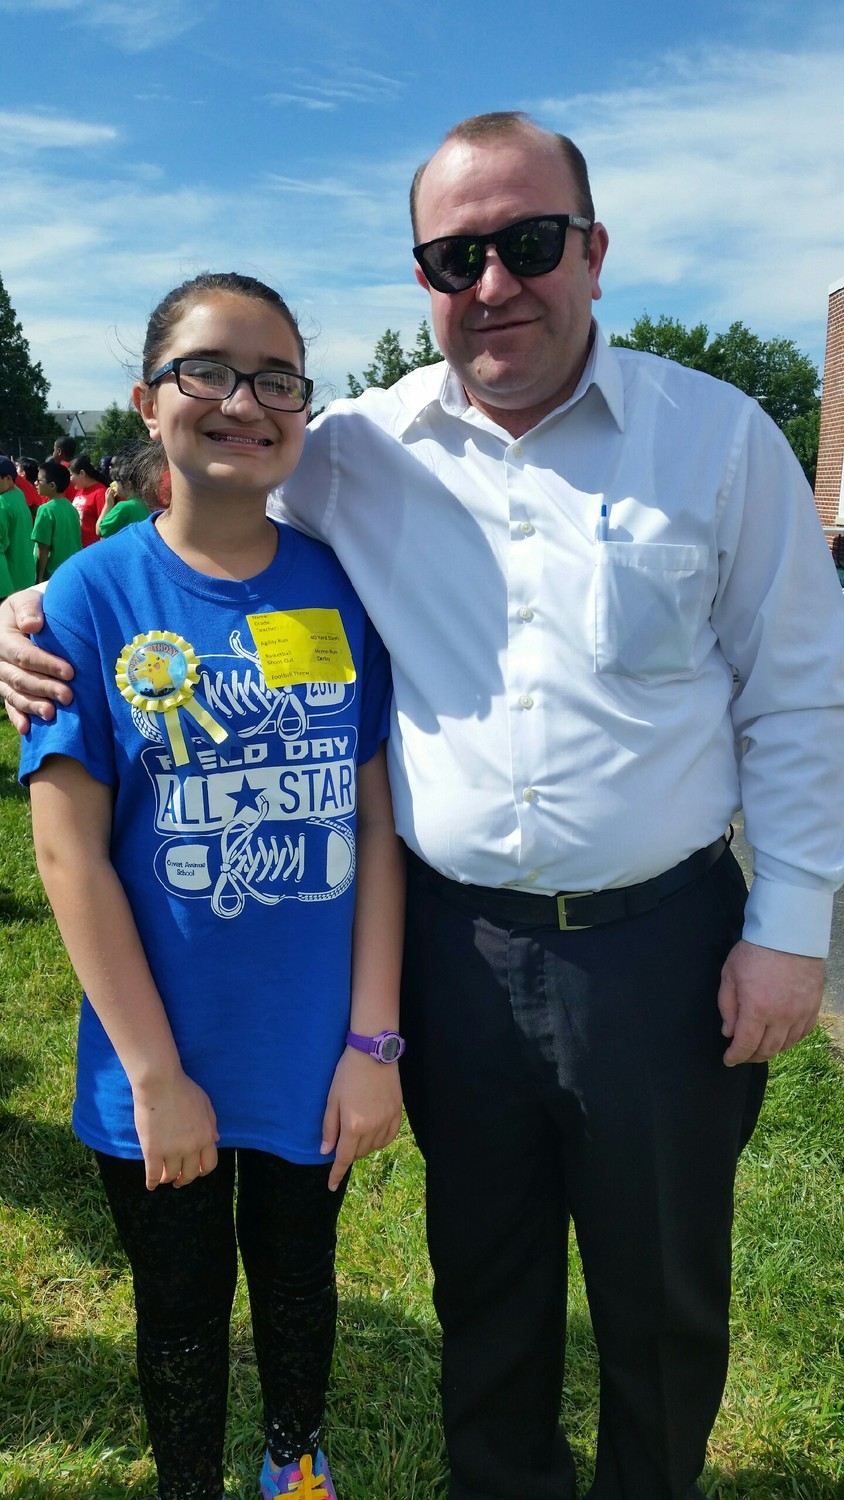 Sokol Vokshi celebrated Franklin Square School District's Field Day with his daughter, Britney.